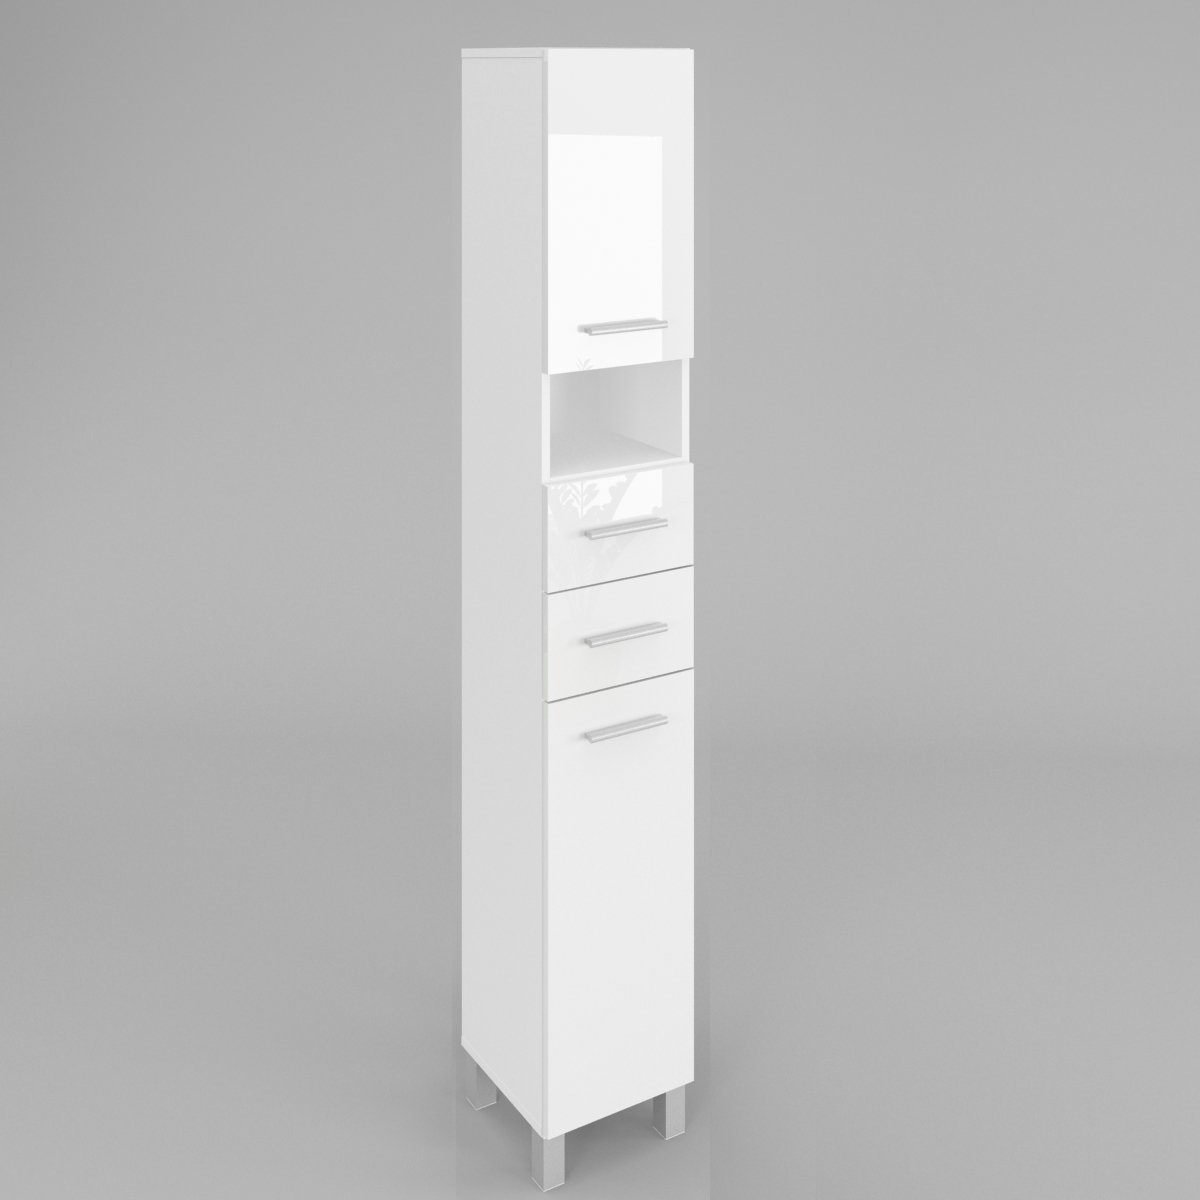 GABI BATHROOM HIGH CABINET WITH DOORS AND SHELVES - CARCASS: BLACK HIGH GLOSS - FRONTS: WHITE HIGH GLOSS